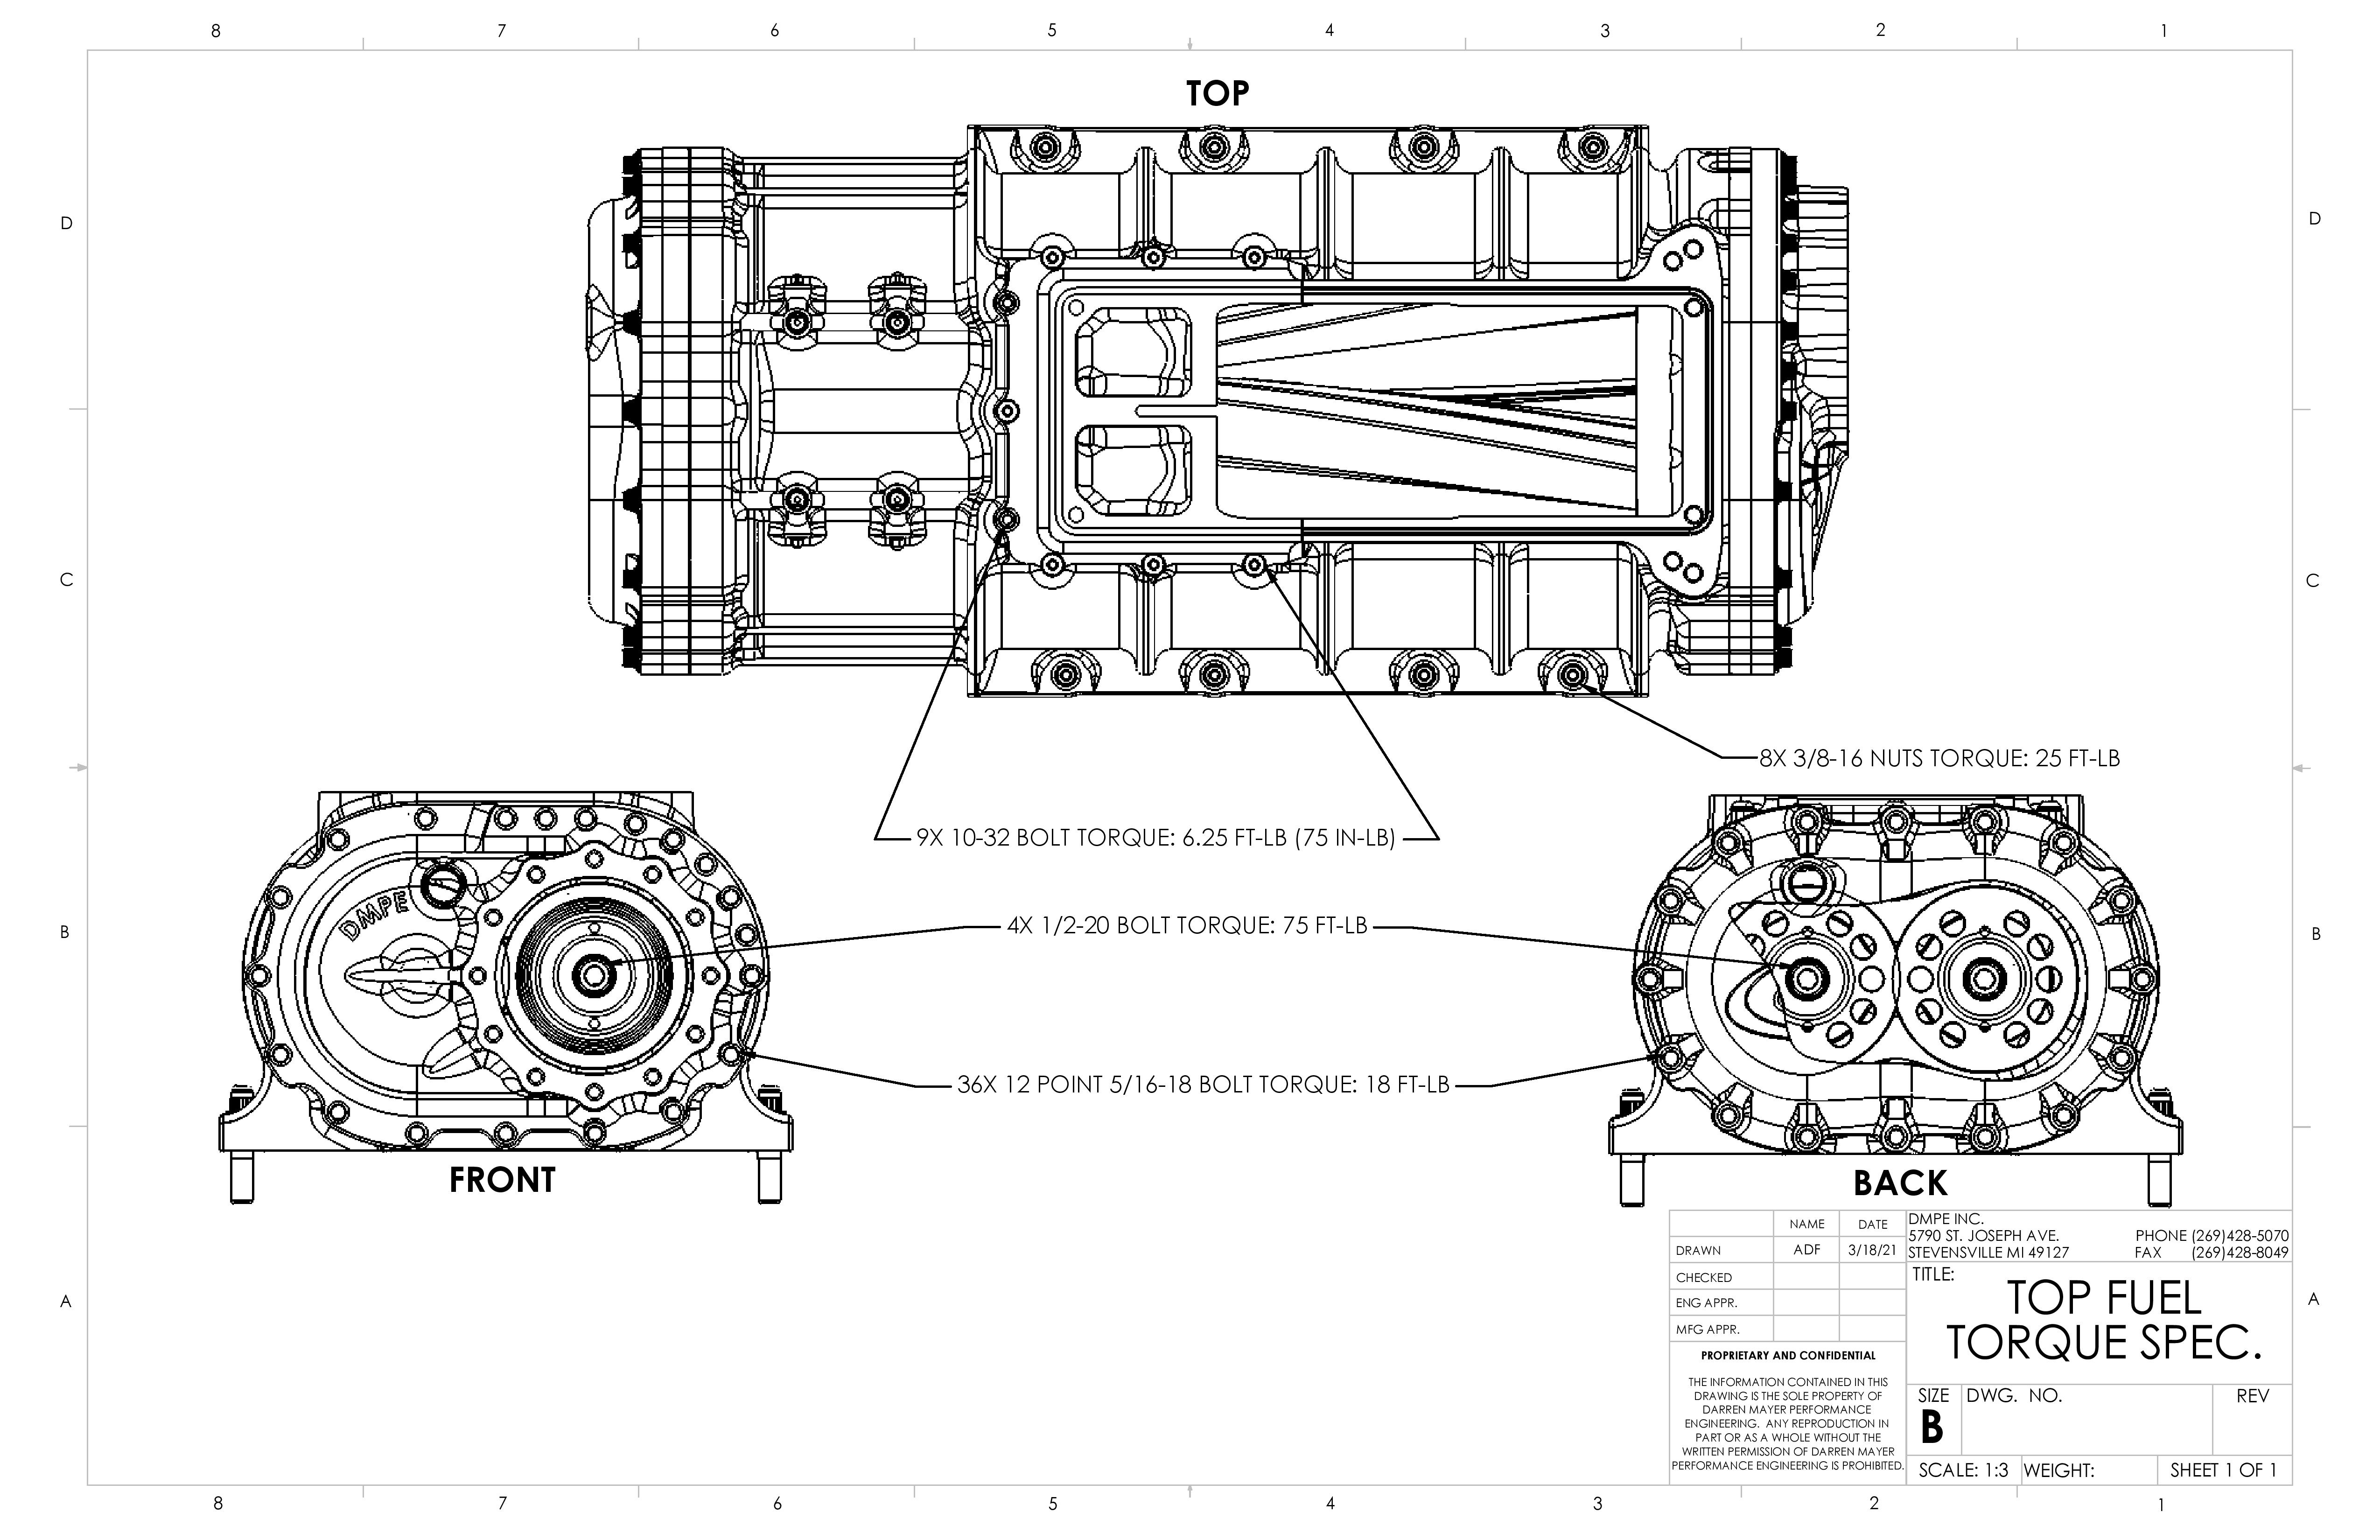 top-fuel-bolt-torque-specs-page-001.jpg